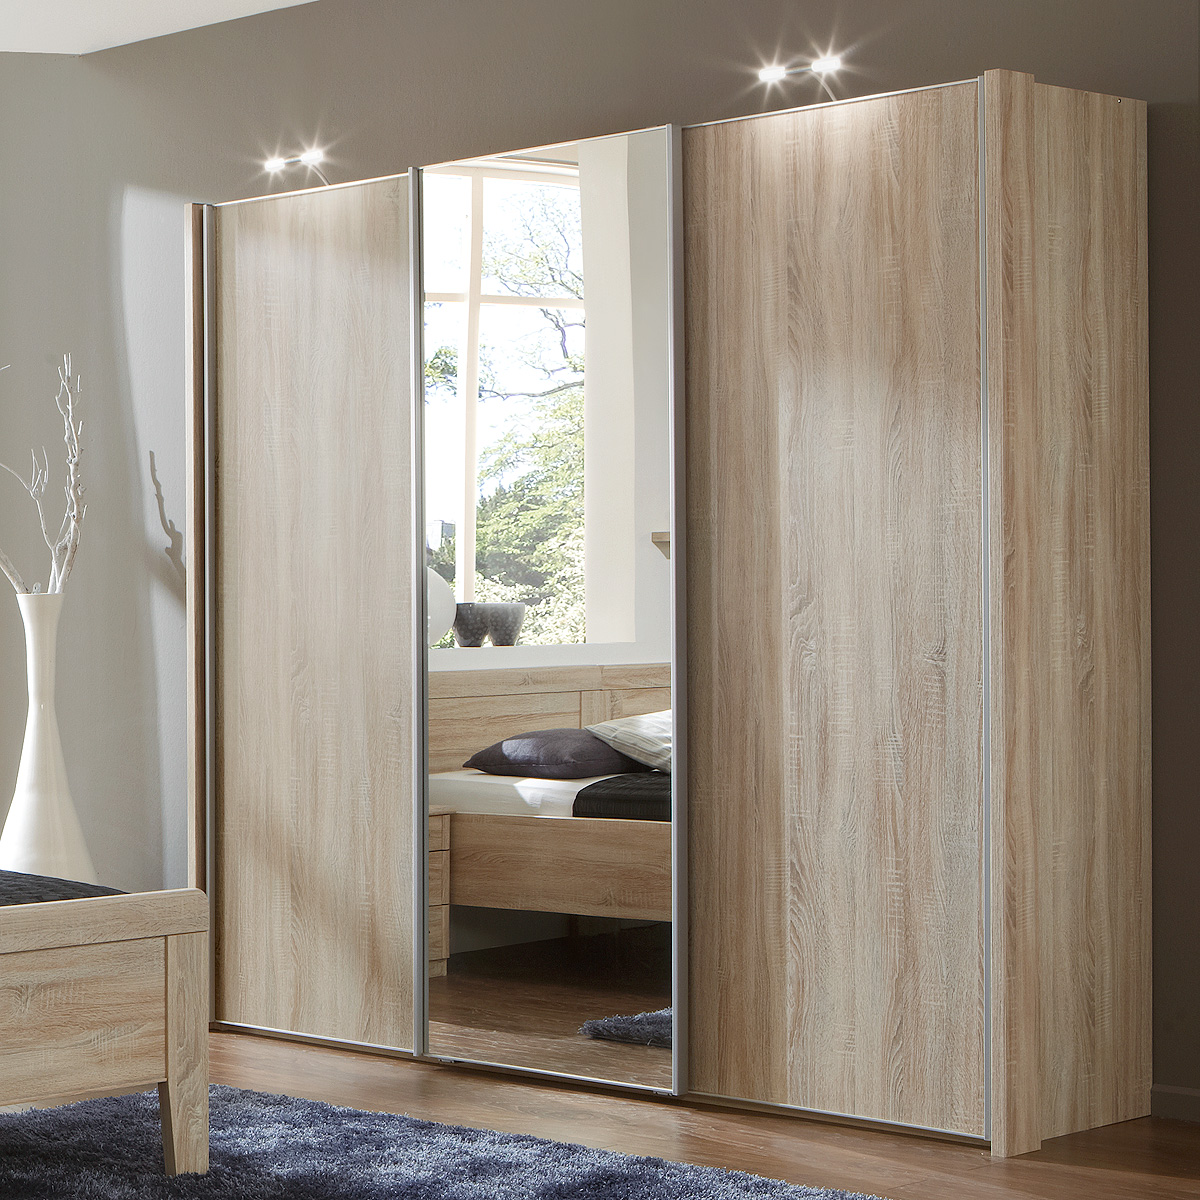 schwebet renschrank meran schrank eiche s gerau mit spiegel 225 cm ebay. Black Bedroom Furniture Sets. Home Design Ideas